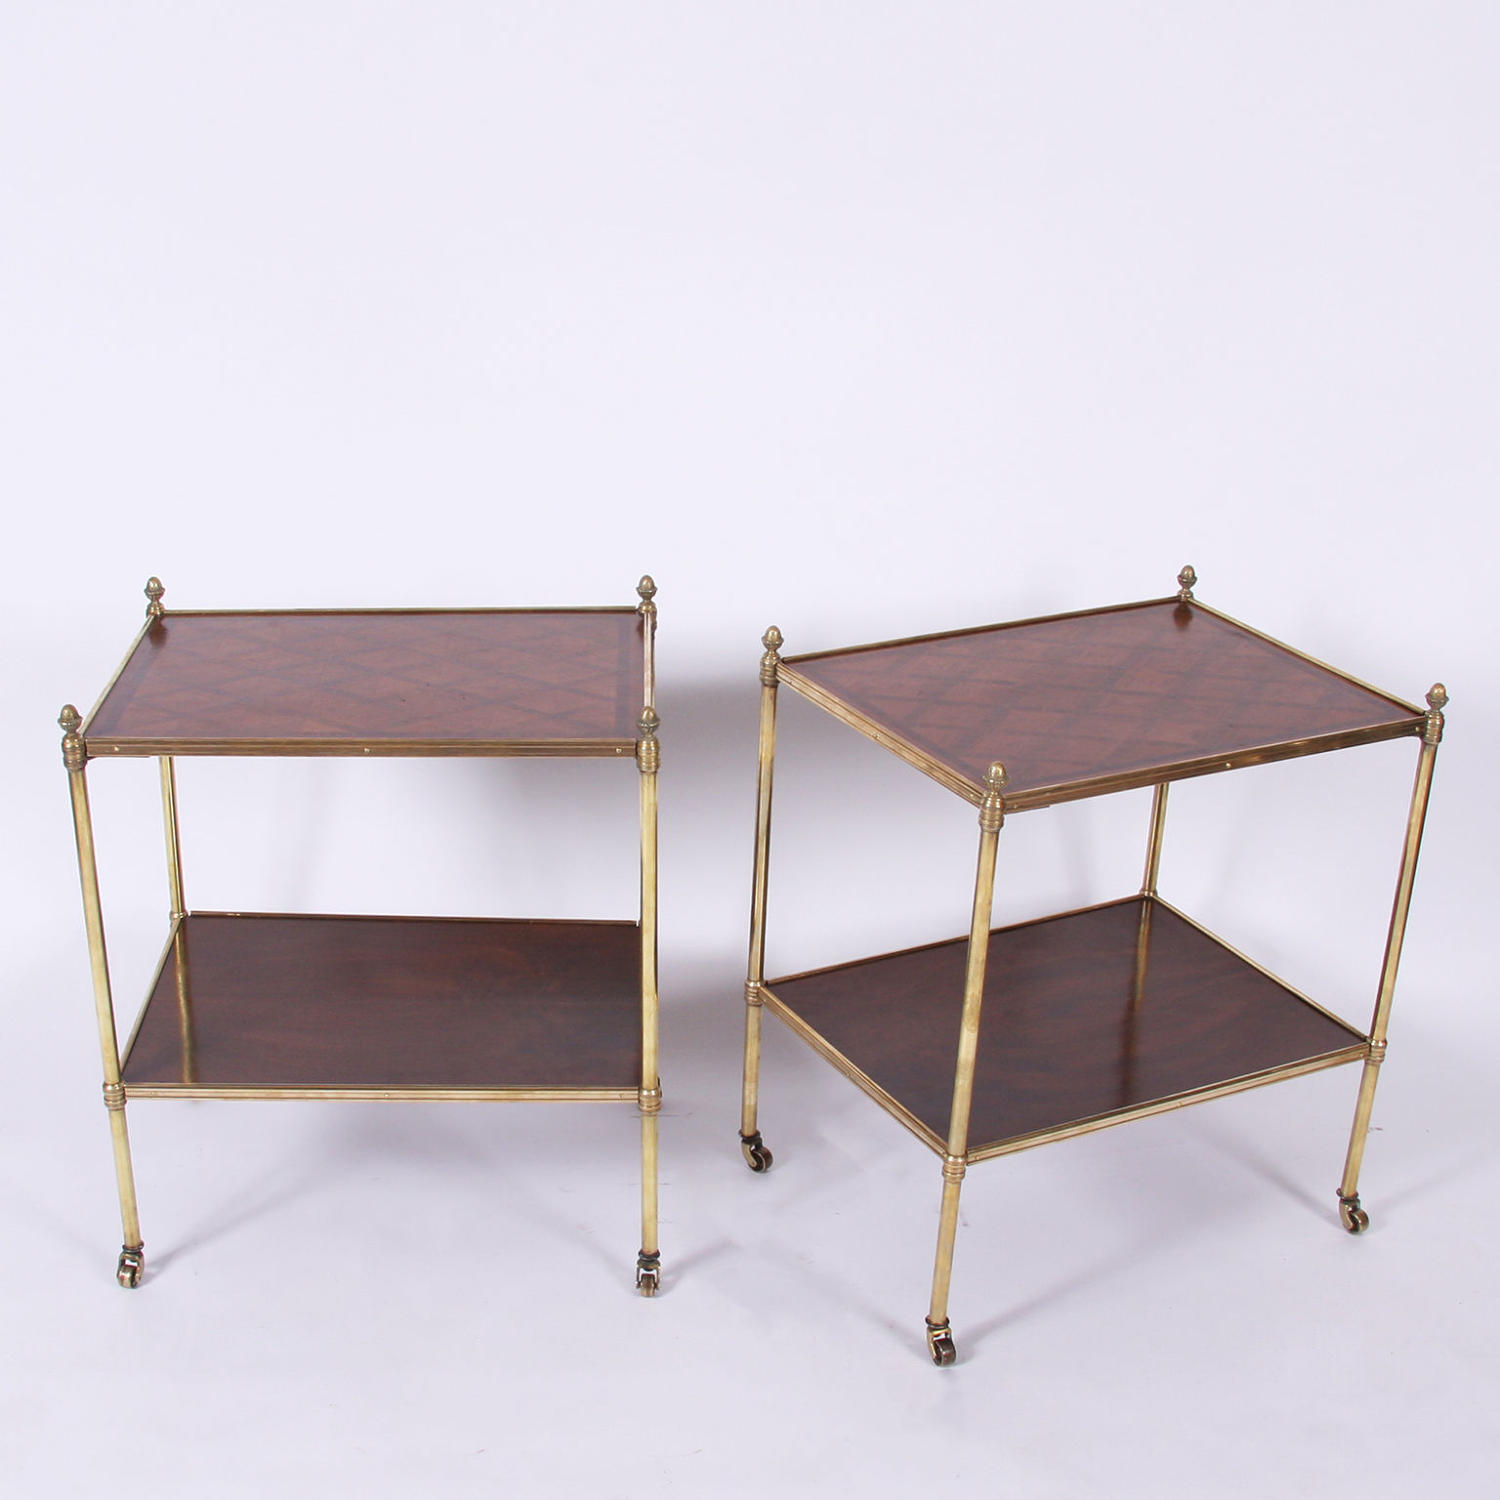 Pair of Parquetry Tables